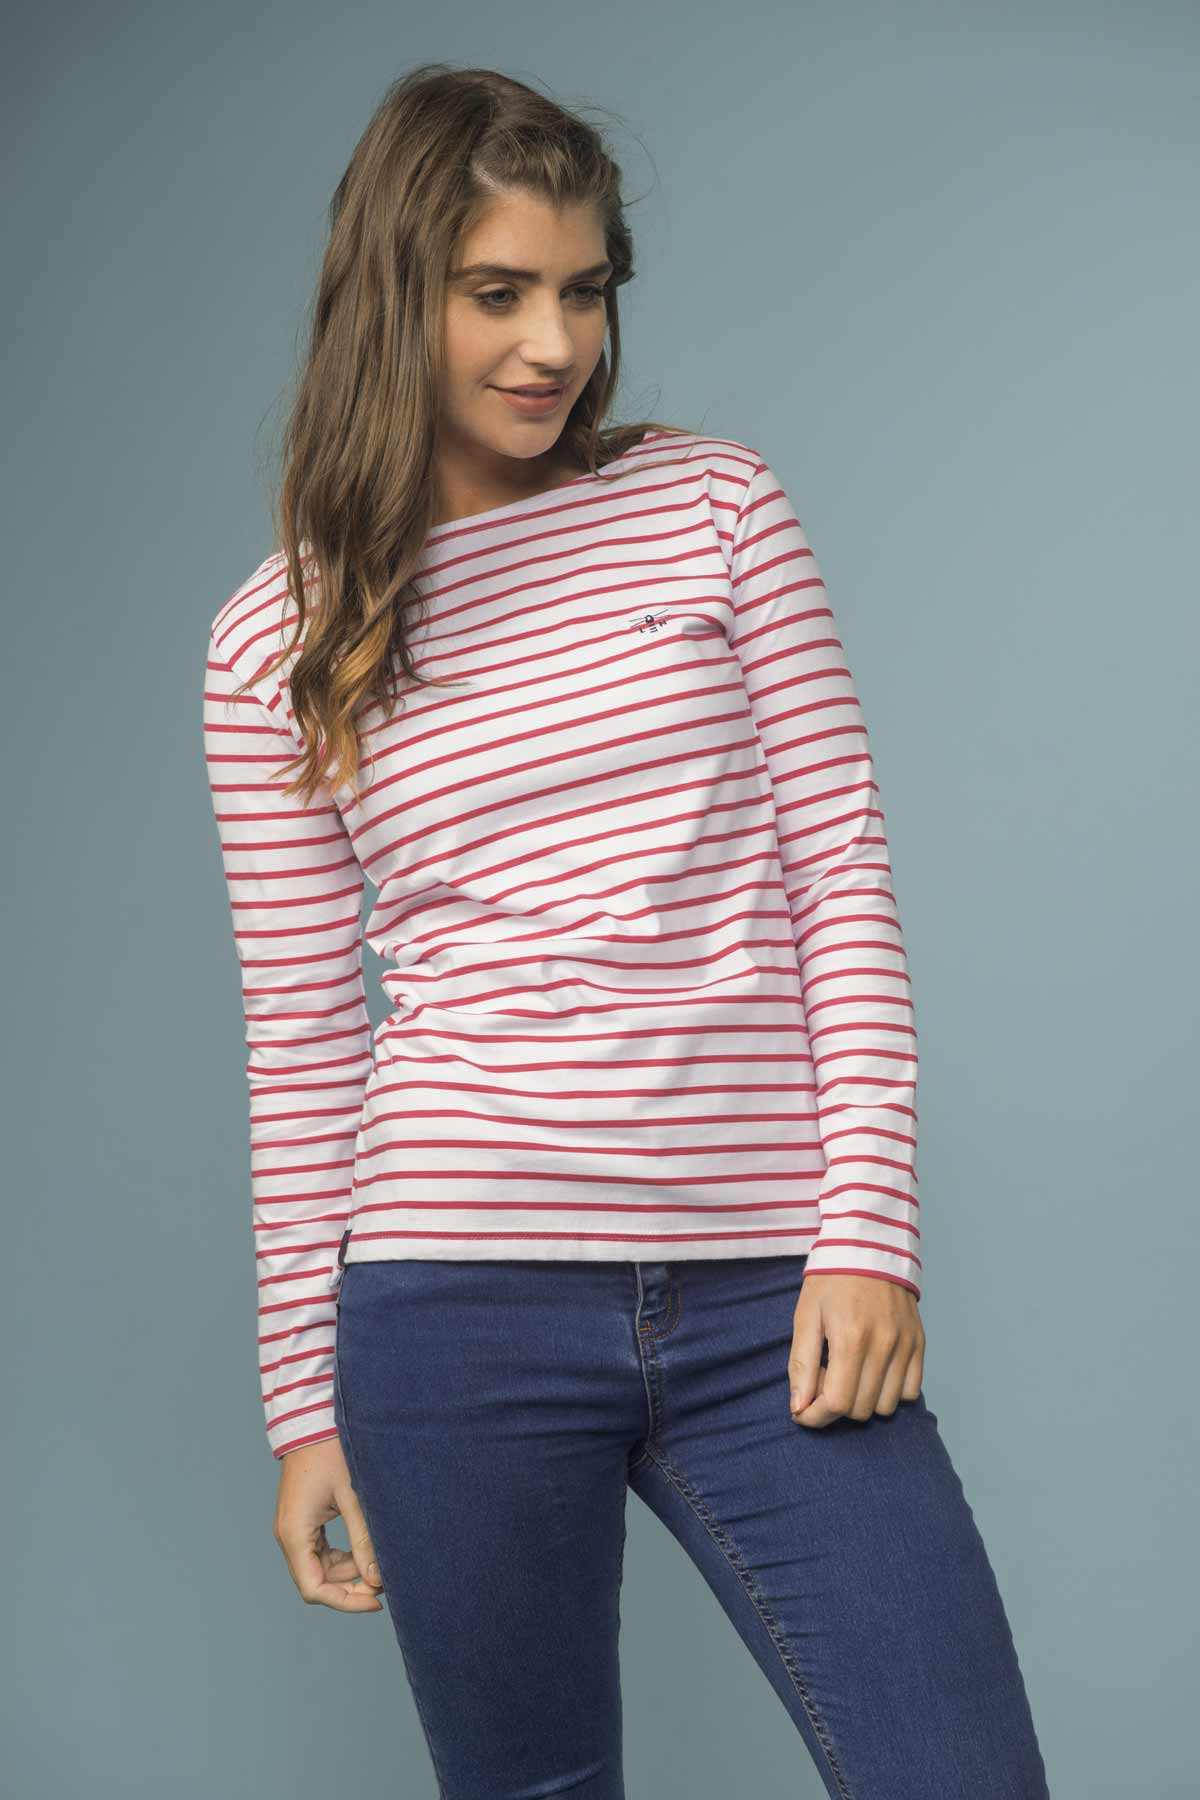 Lighthouse Causeway women's scarlet stripe long sleeve top